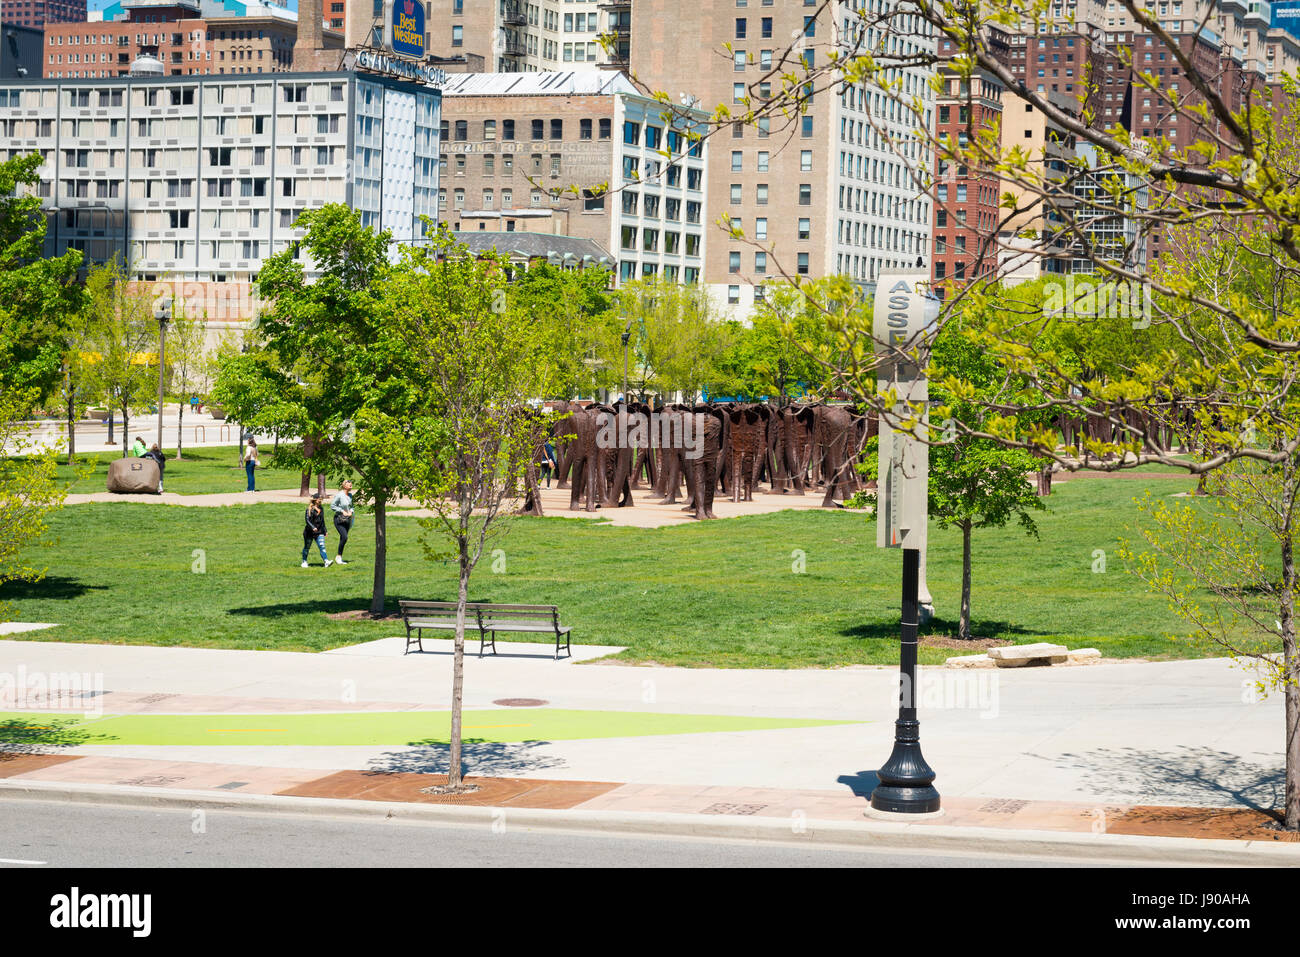 Chicago Illinois East Roosevelt Road Grant Park Agora or The Legs by Polish Magdalena Abrakanowicz 106 cast iron - Stock Image